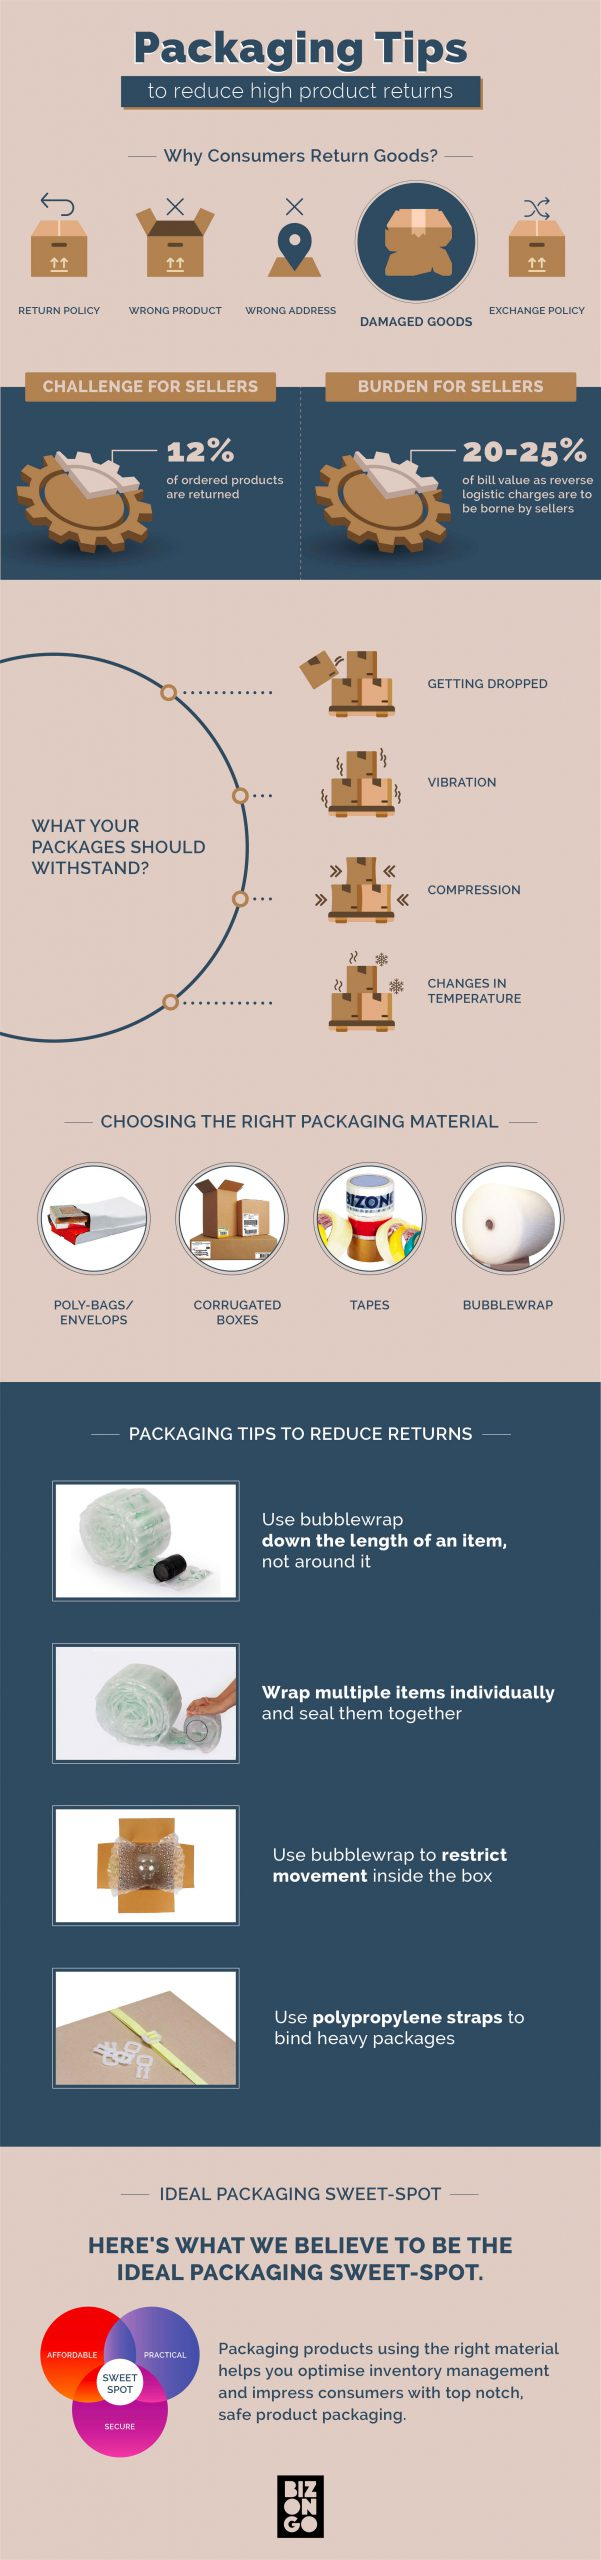 Reduce Packaging Product Returns